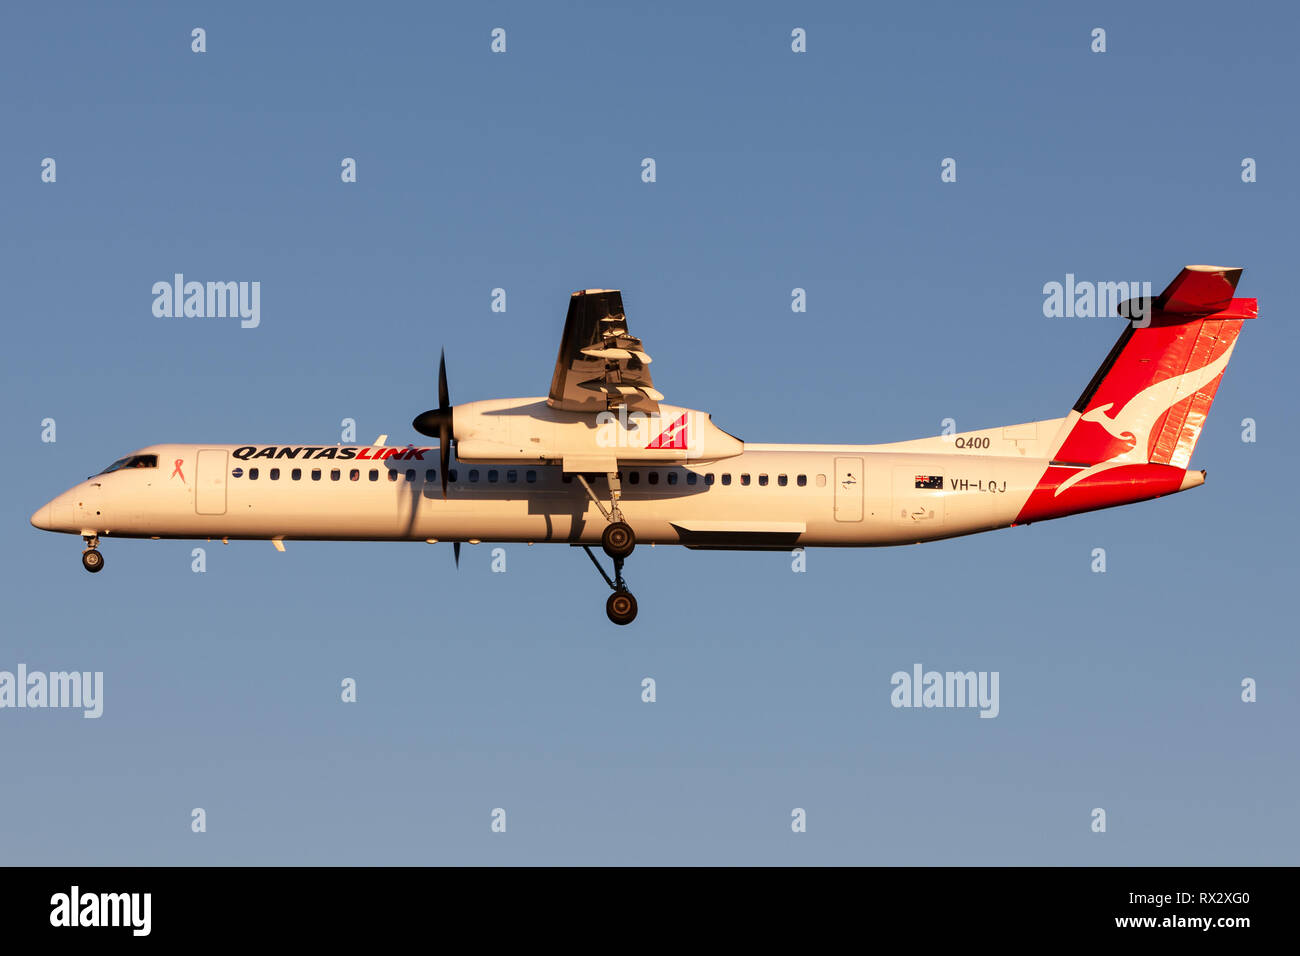 QantasLink (Sunstate airlines) Bombardier DHC-8-402 twin engine turboprop regional airliner on approach to land at Adelaide Airport. Stock Photo